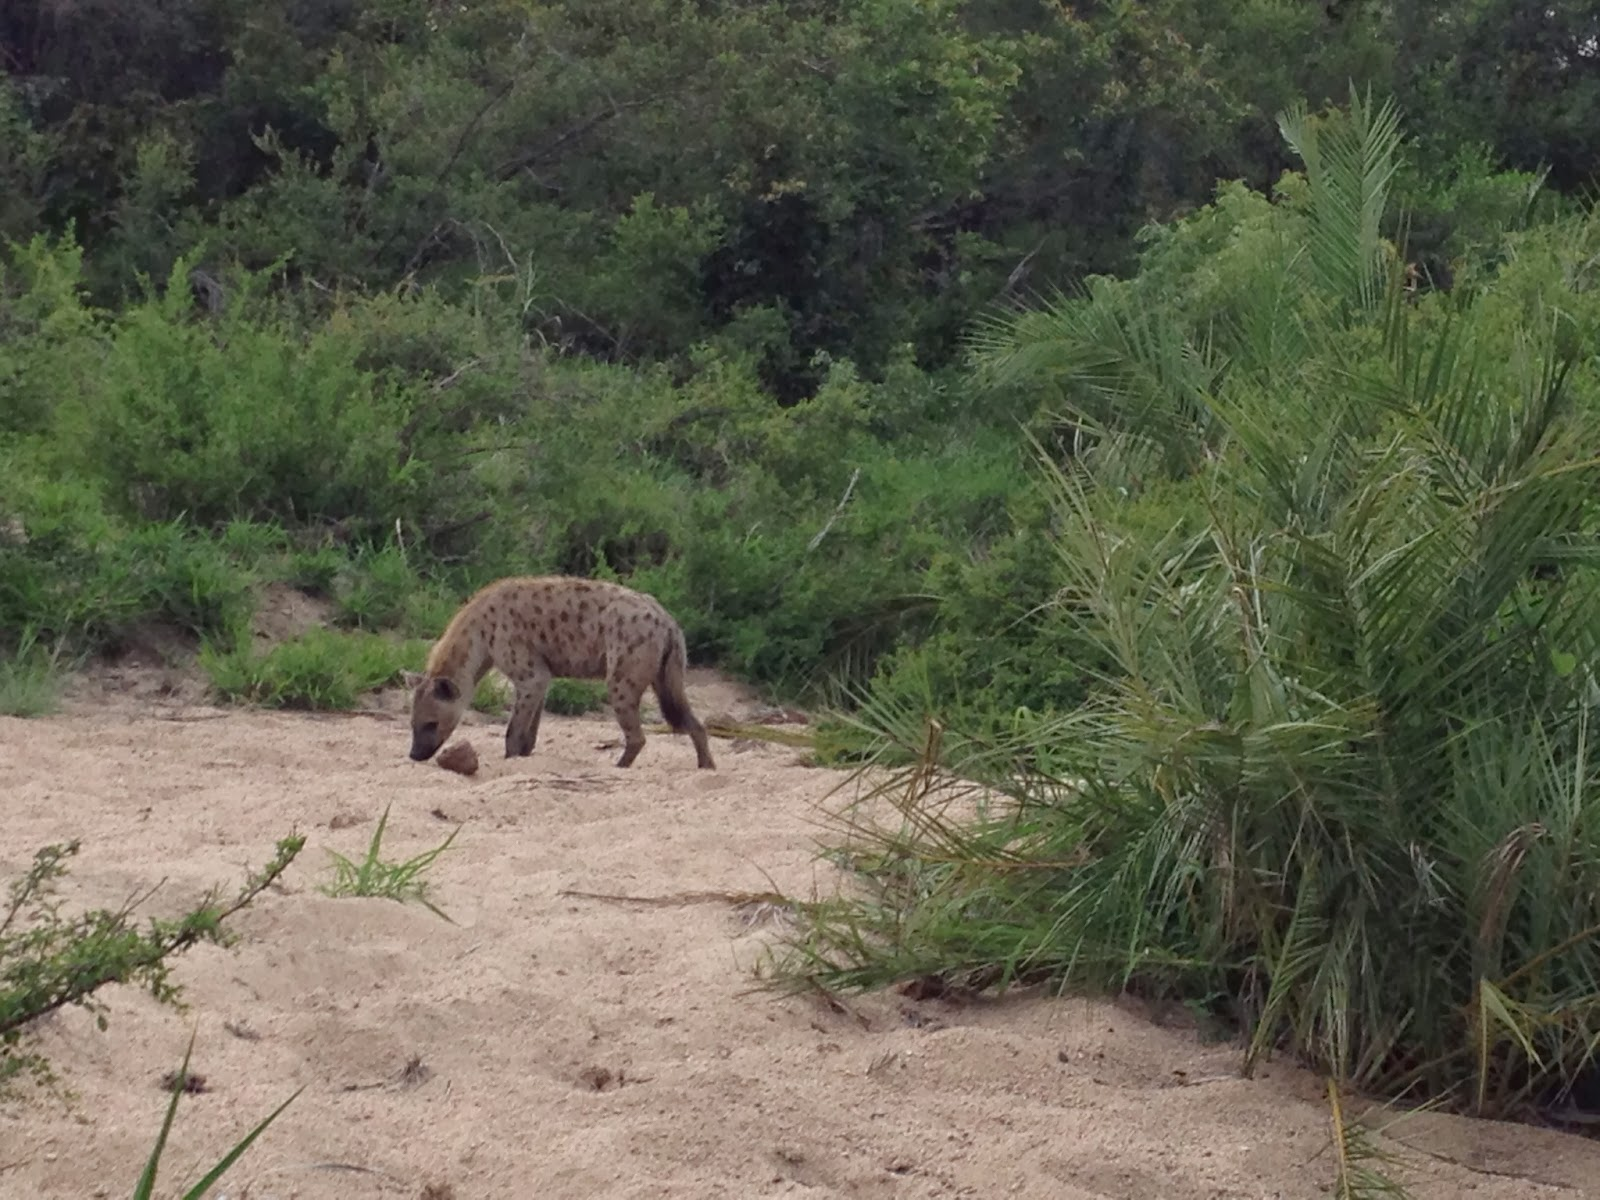 Sabi Sands - The hyena sniffs around